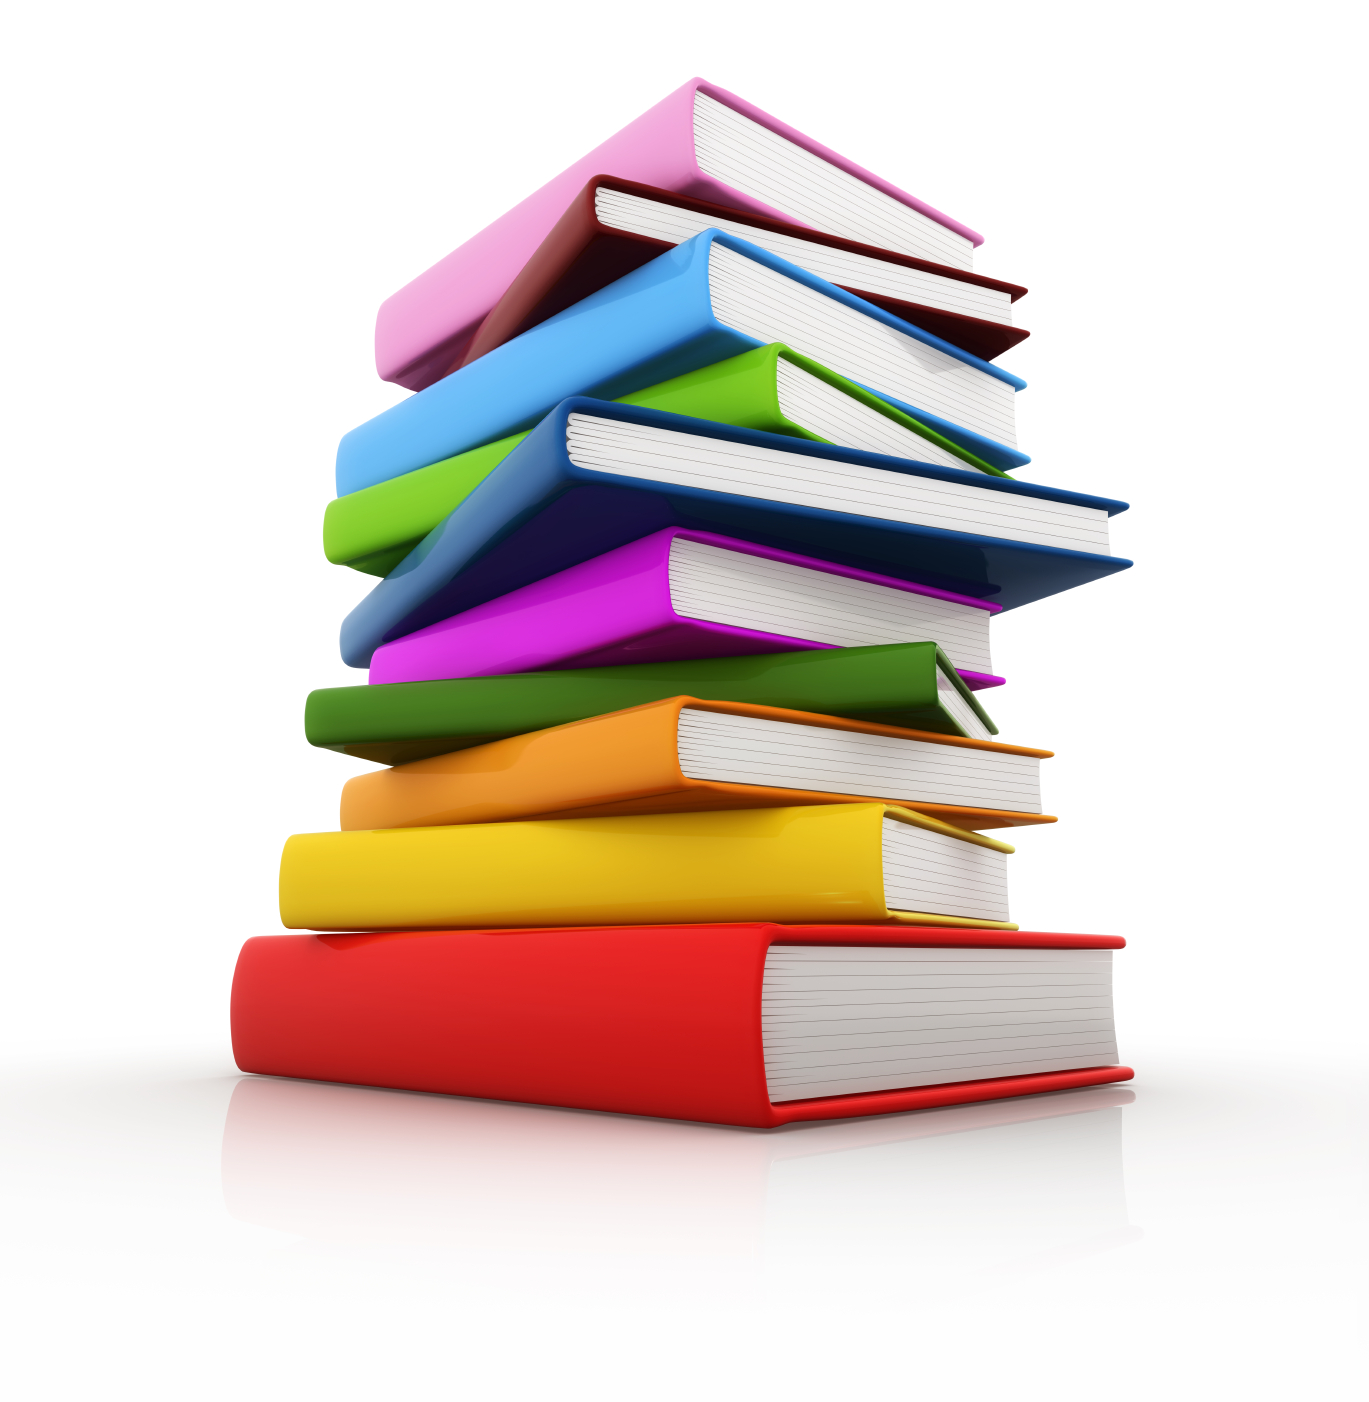 PILE OF BOOKS - ClipArt Best